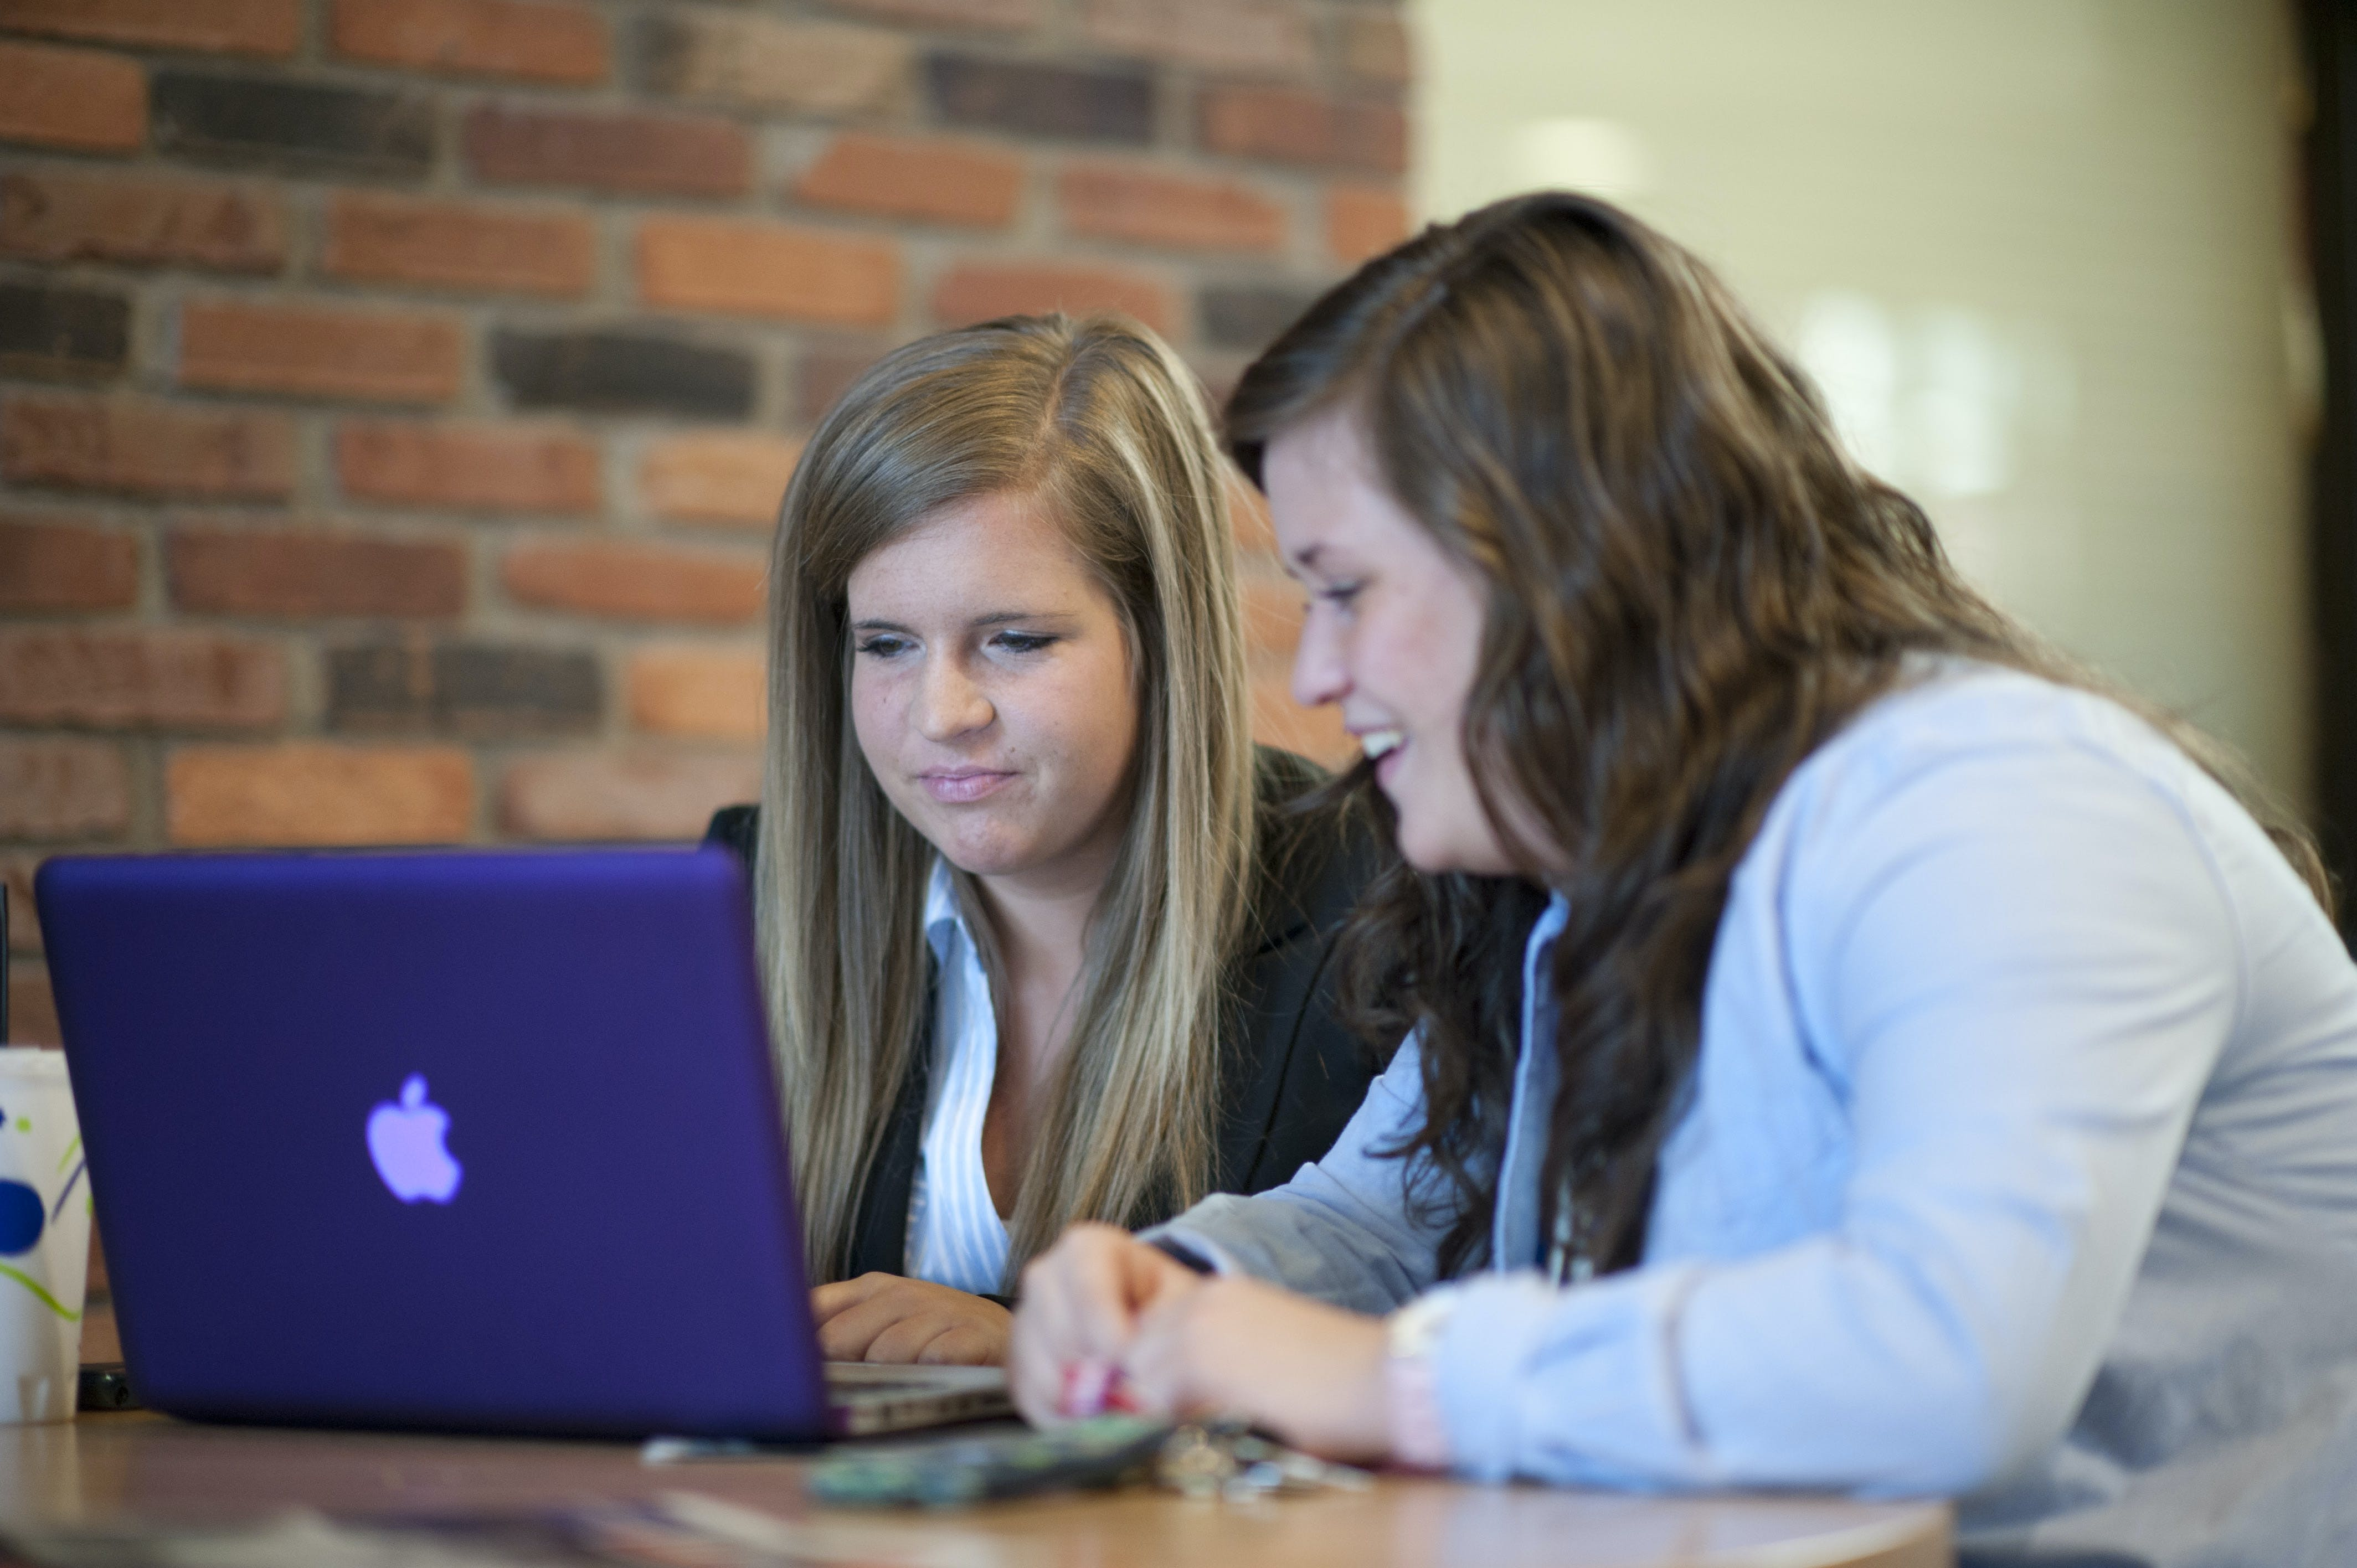 A new initiative in Bethel's College of Adult & Professional Studies replaces textbooks with online course resources, saving students about $1,300 per year.